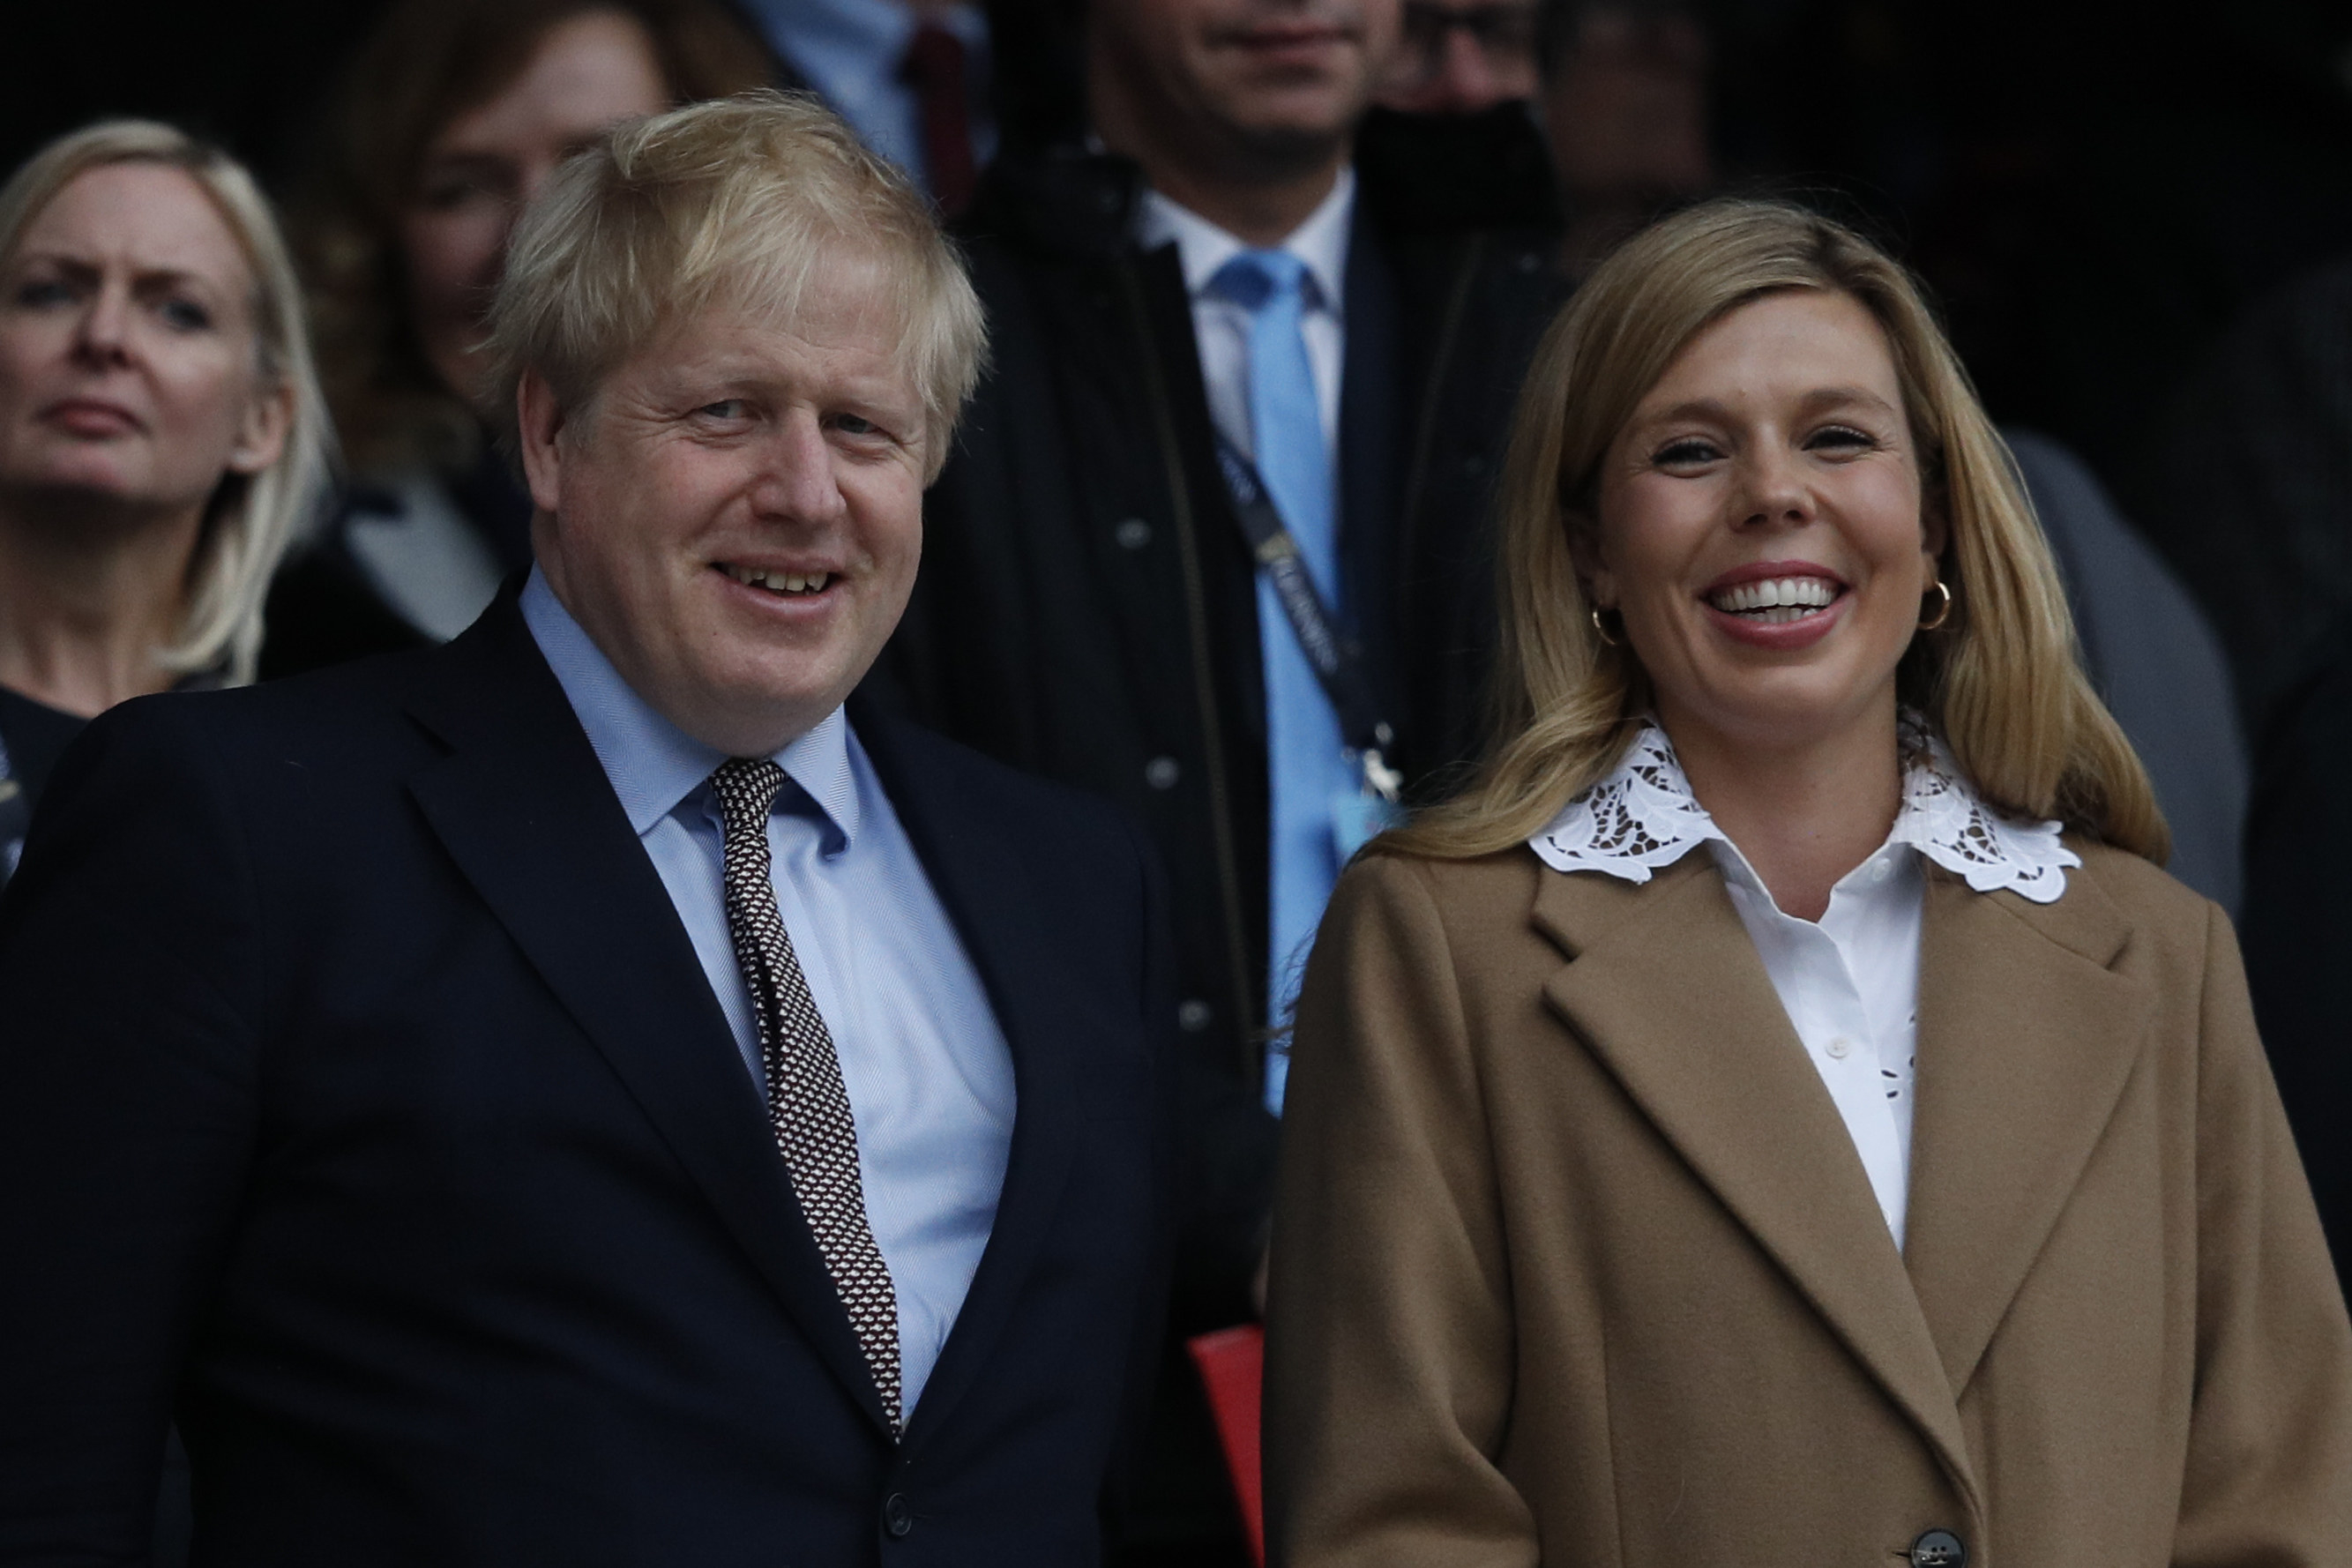 Boris Johnson S Fiance Carrie Symonds Has Given Birth To A Baby Boy